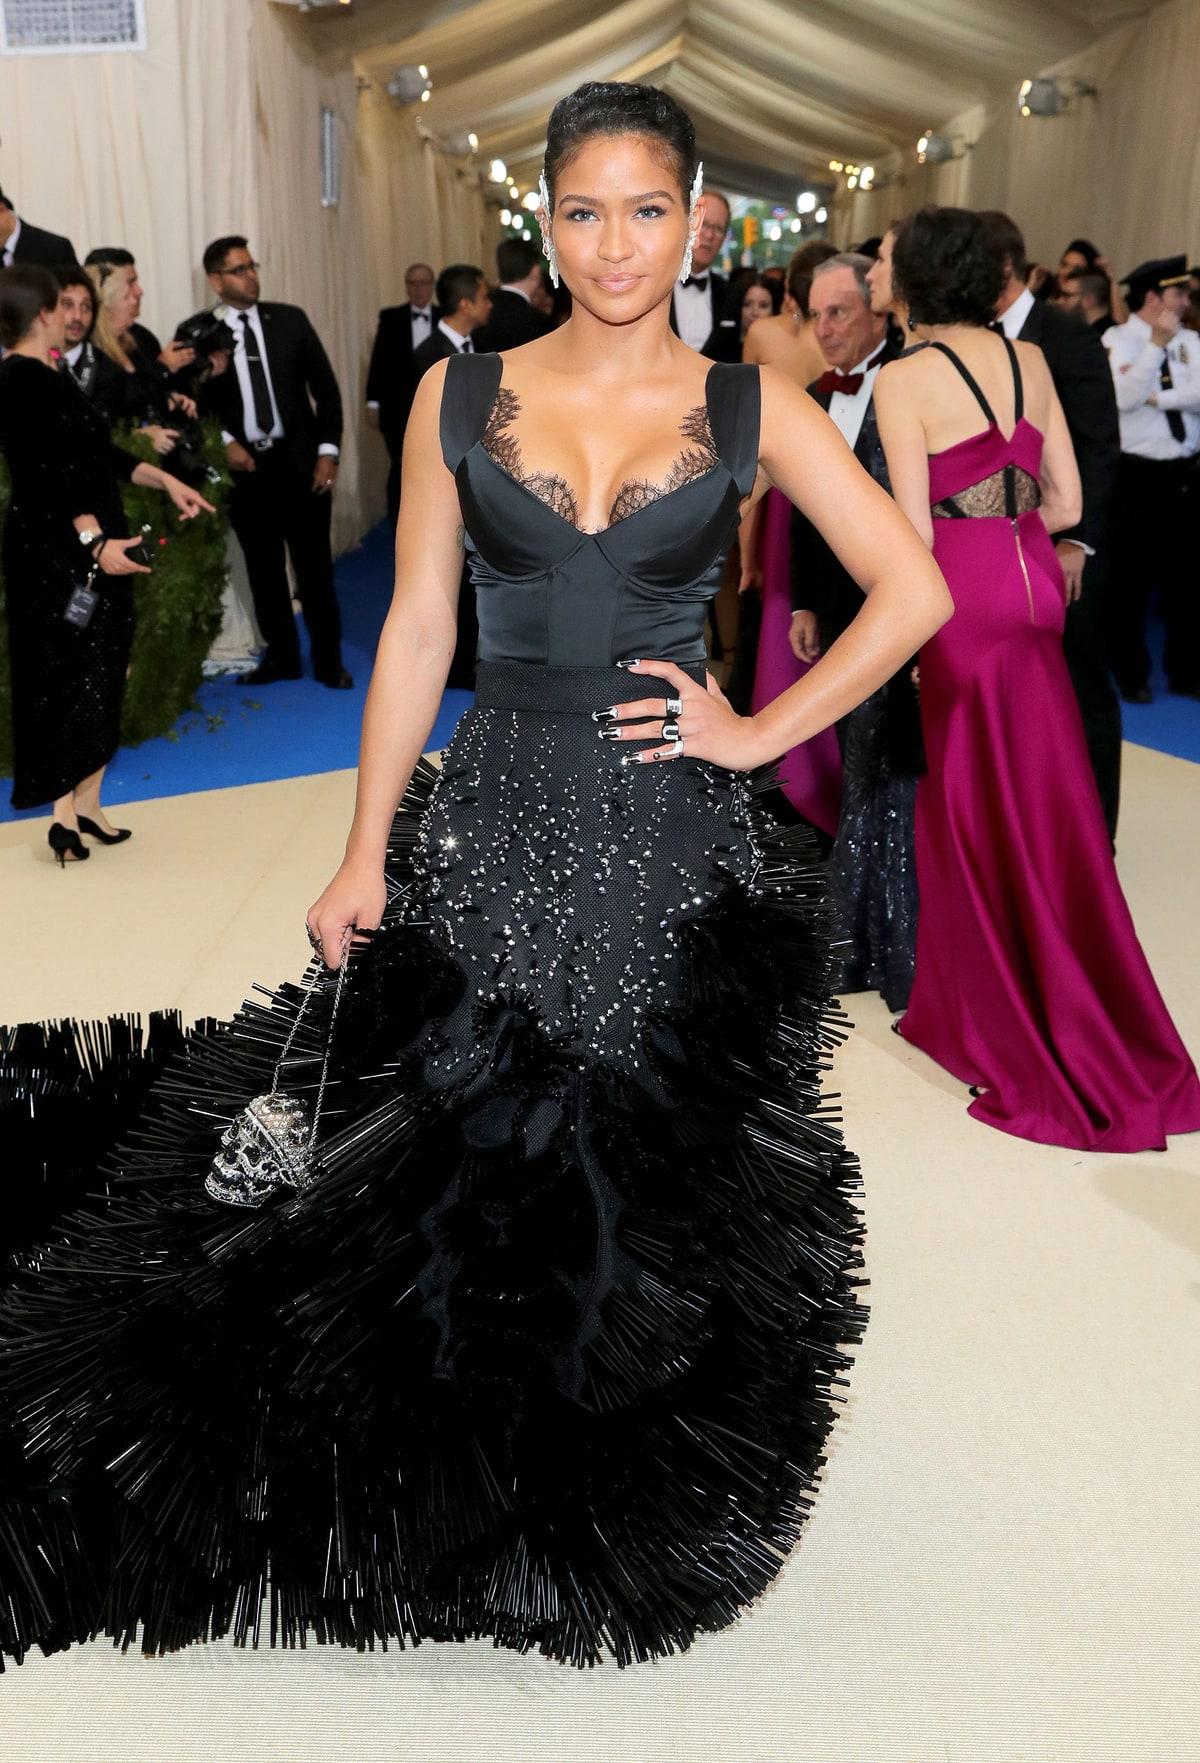 Cassie   in On Aura Tout Vu . The upper half of this dress could have been flattering but the more you look around the more you hate this dress. The spikes on the bottom remind me of car wash spindles and the pointy accessories are giving me porcupine vibes.